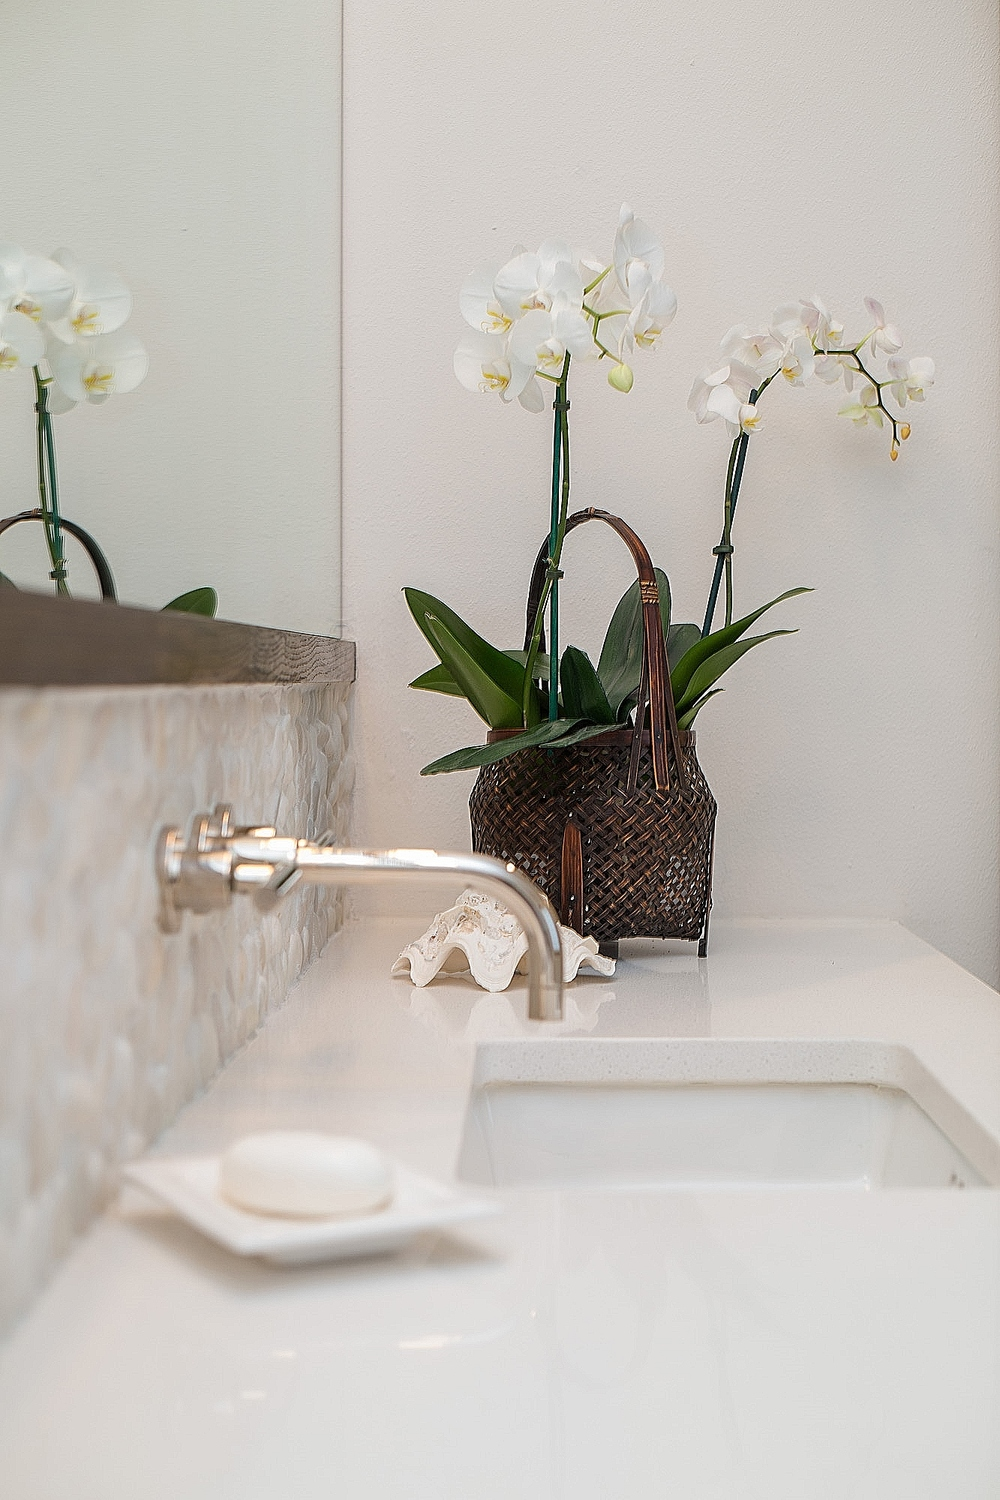 Master bathroom remodel; sink; countertop; faucet; decor | Interior Designer: Carla Aston / Photographer: Tori Aston